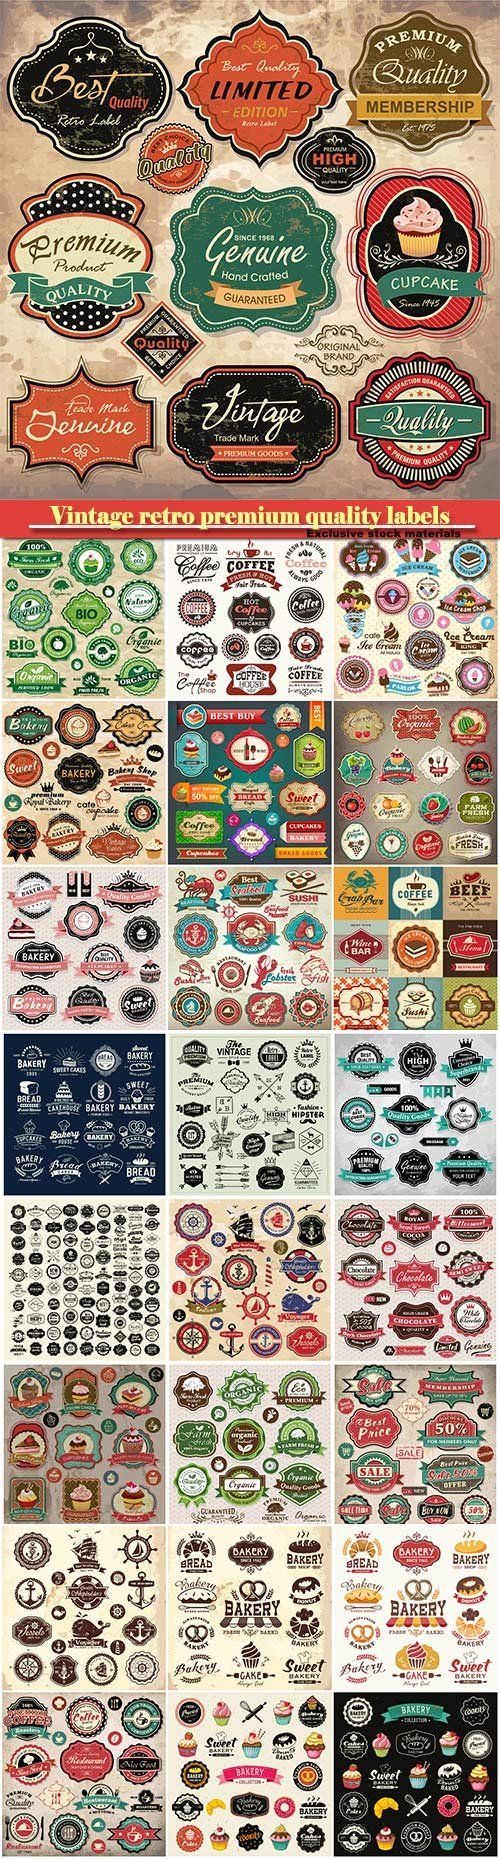 Collection of vintage retro premium quality labels